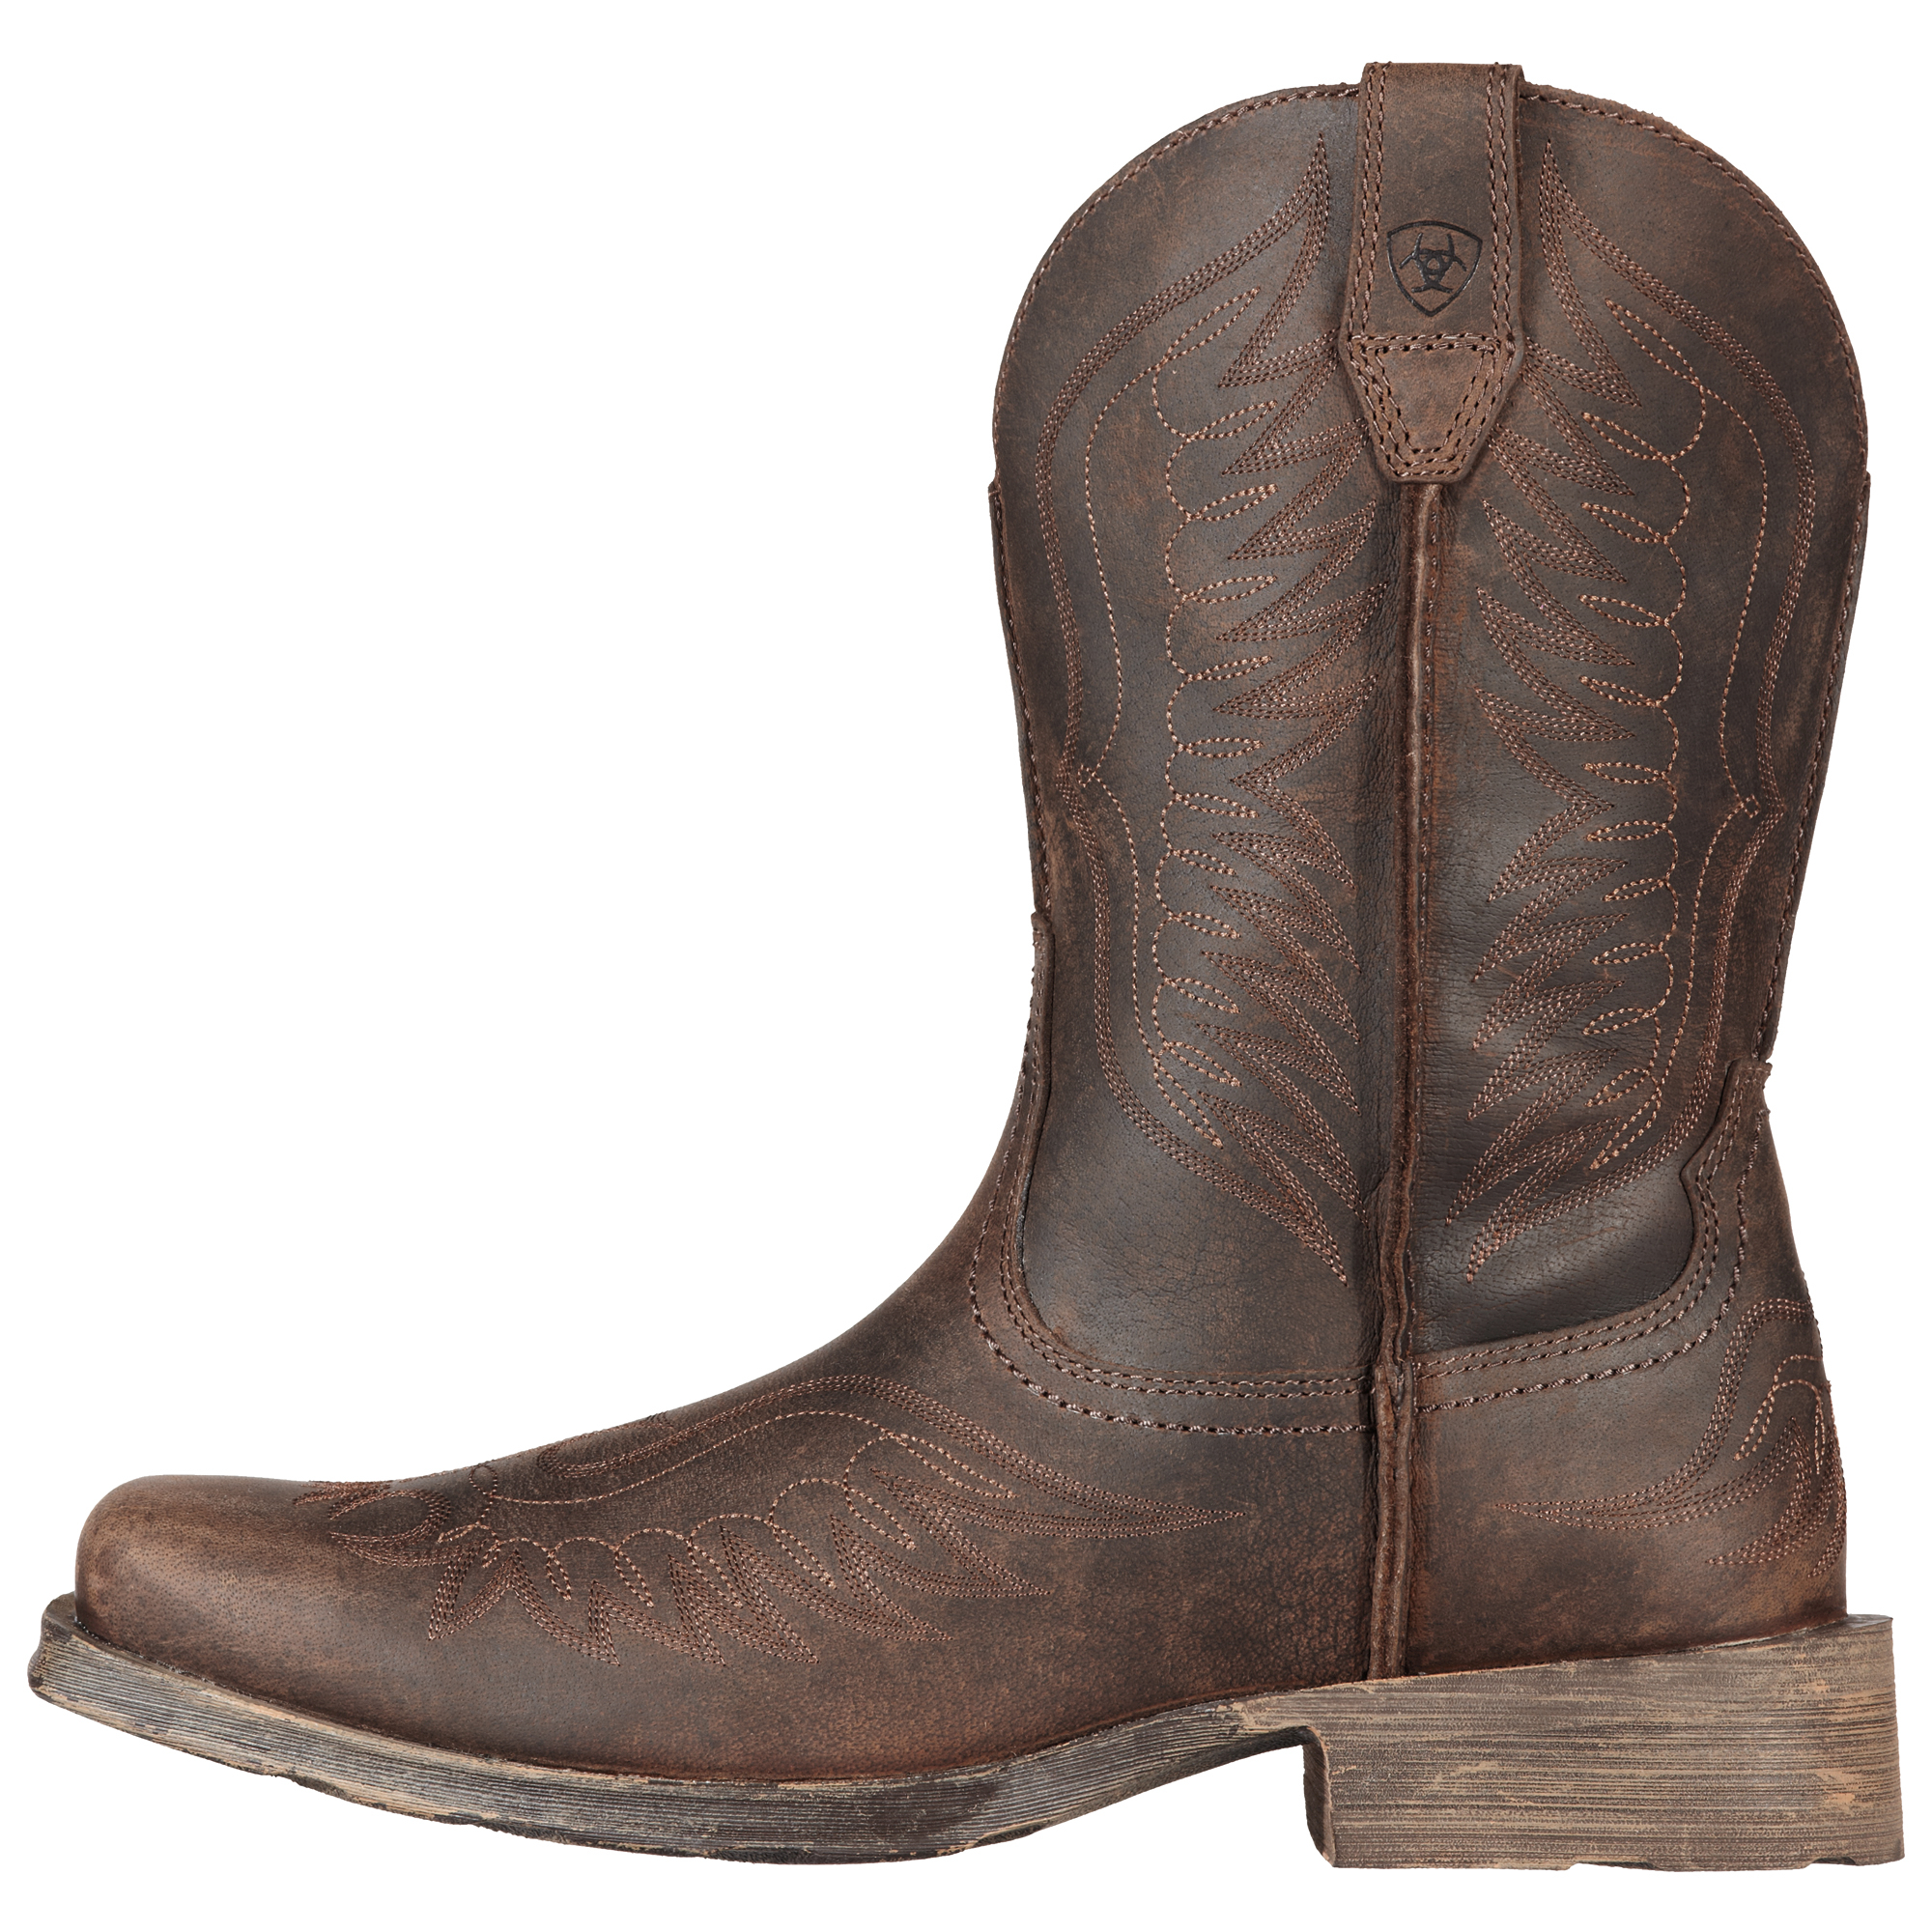 Mens Cowboy Boots On Sale upKV1xds